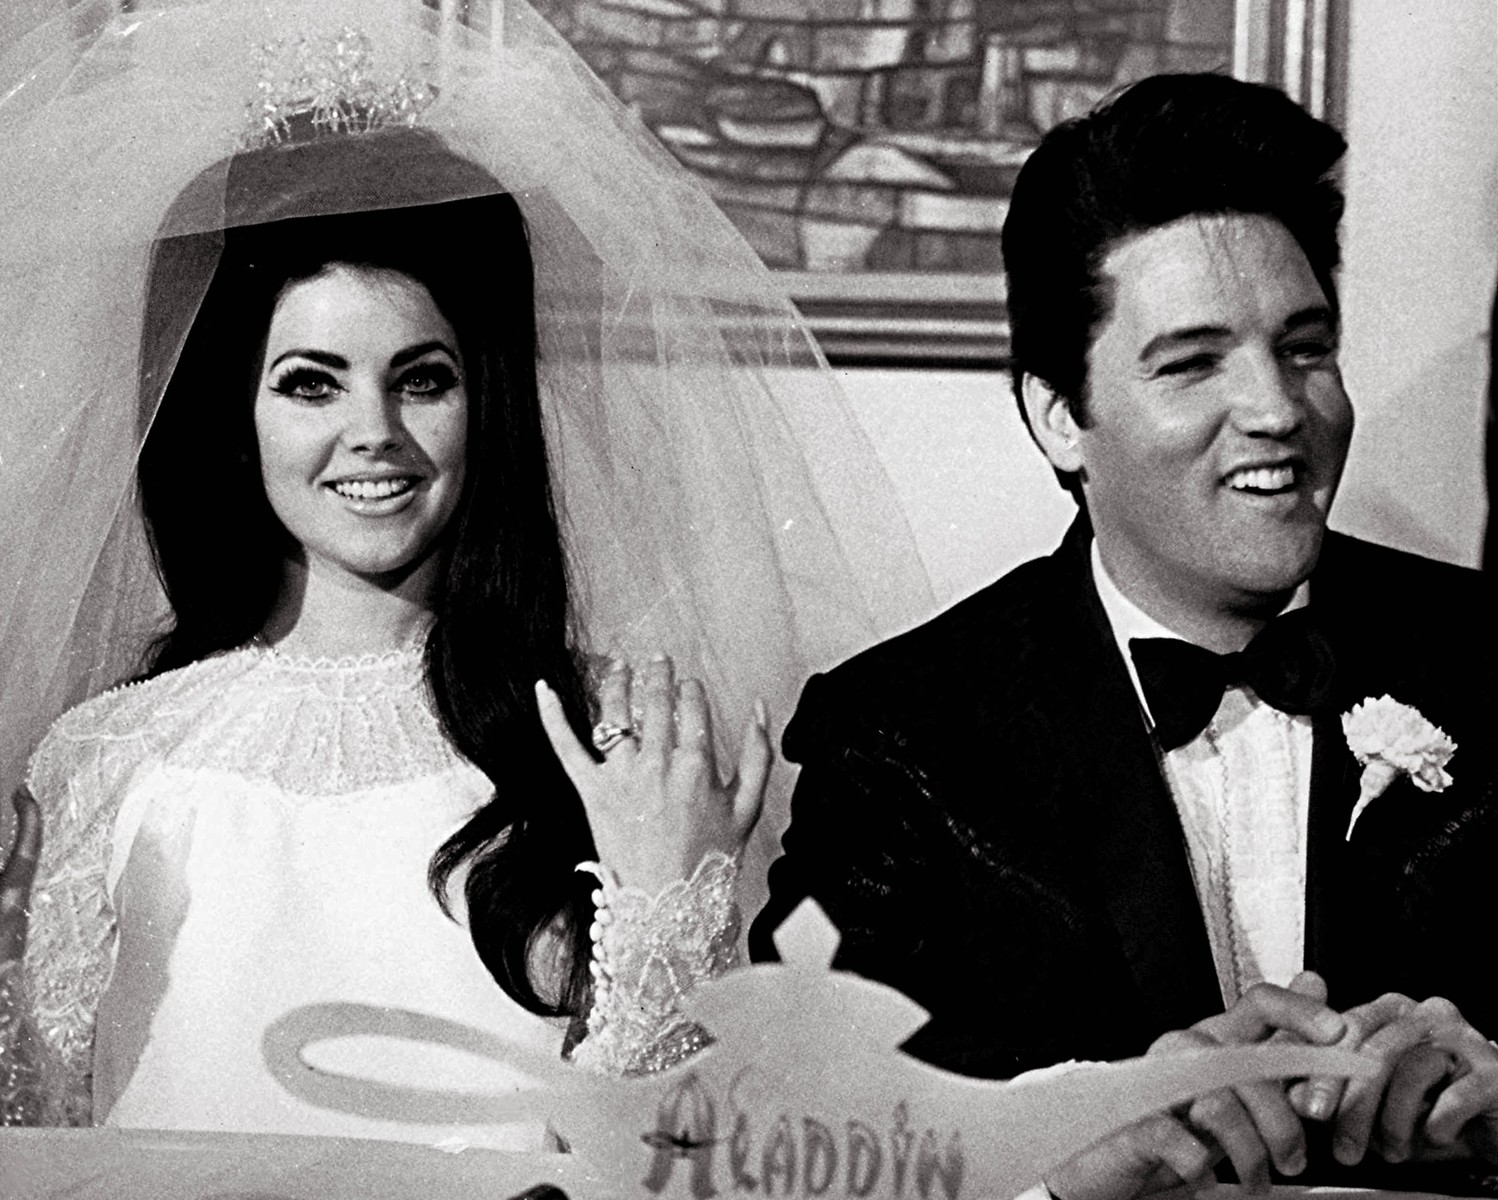 Elvis Presley Priscilla Wagner Wedding May 1 1967 From The Bygone